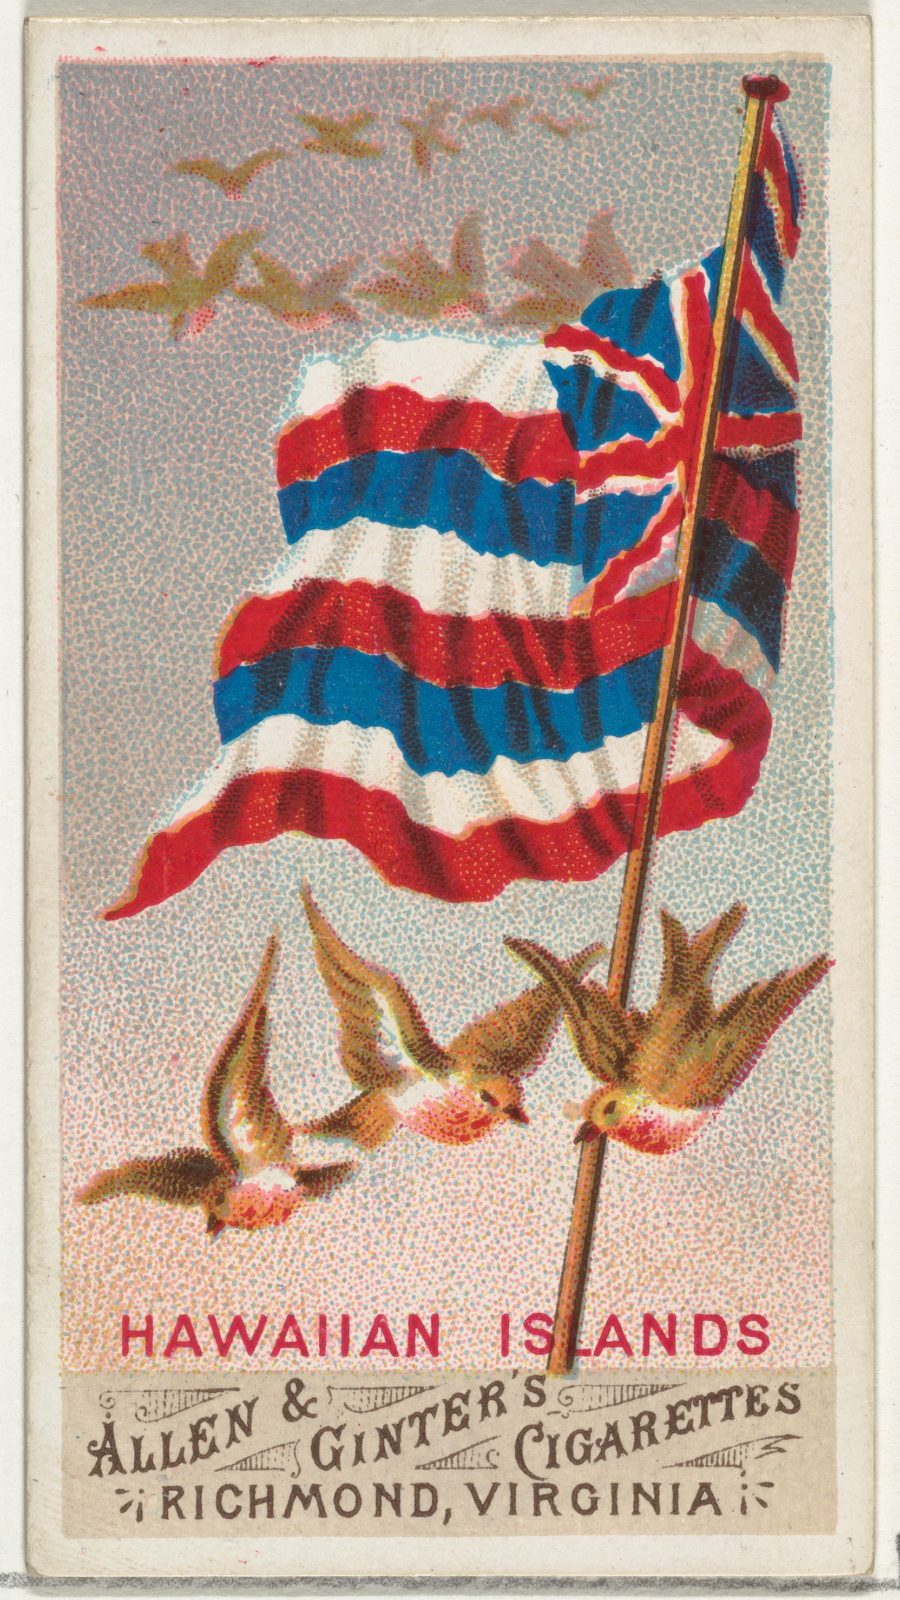 Hawaiian Islands, from Flags of All Nations, Series 1 (N9) for Allen & Ginter Cigarettes Brands